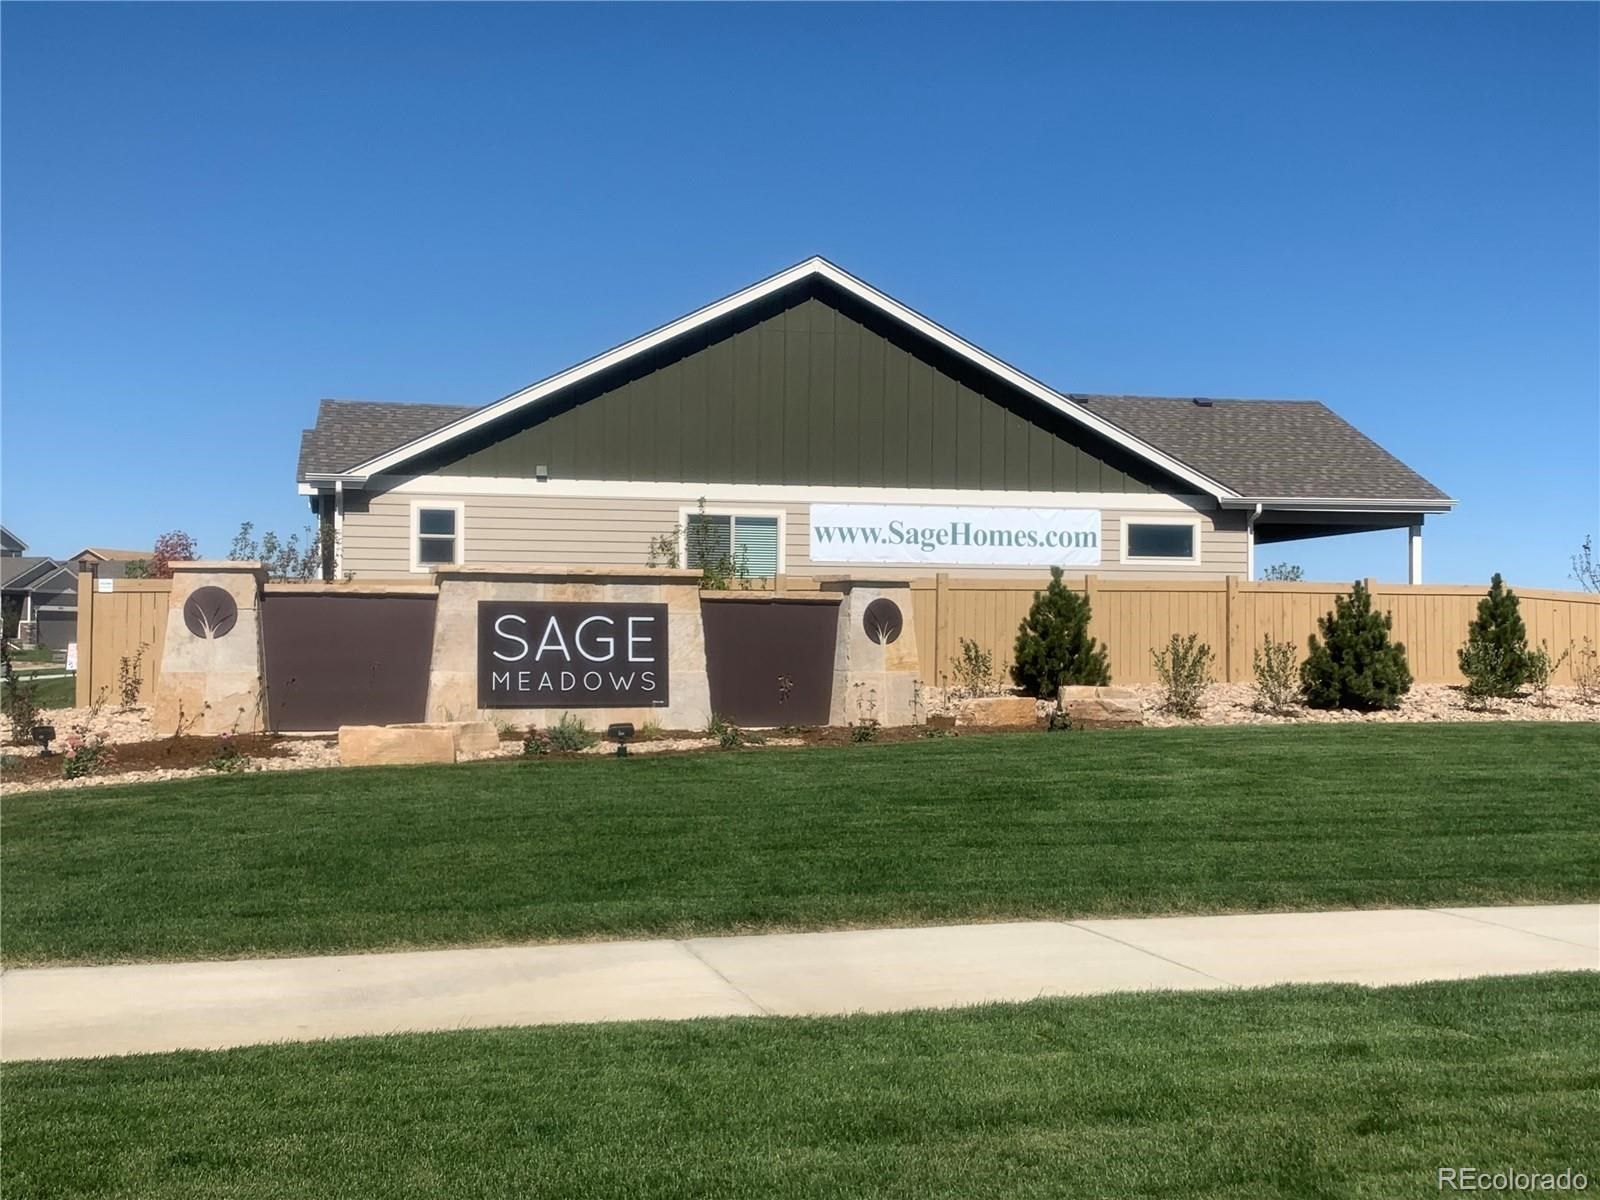 MLS# 5752610 - 28 - 6836 Sage Meadows Drive, Wellington, CO 80549